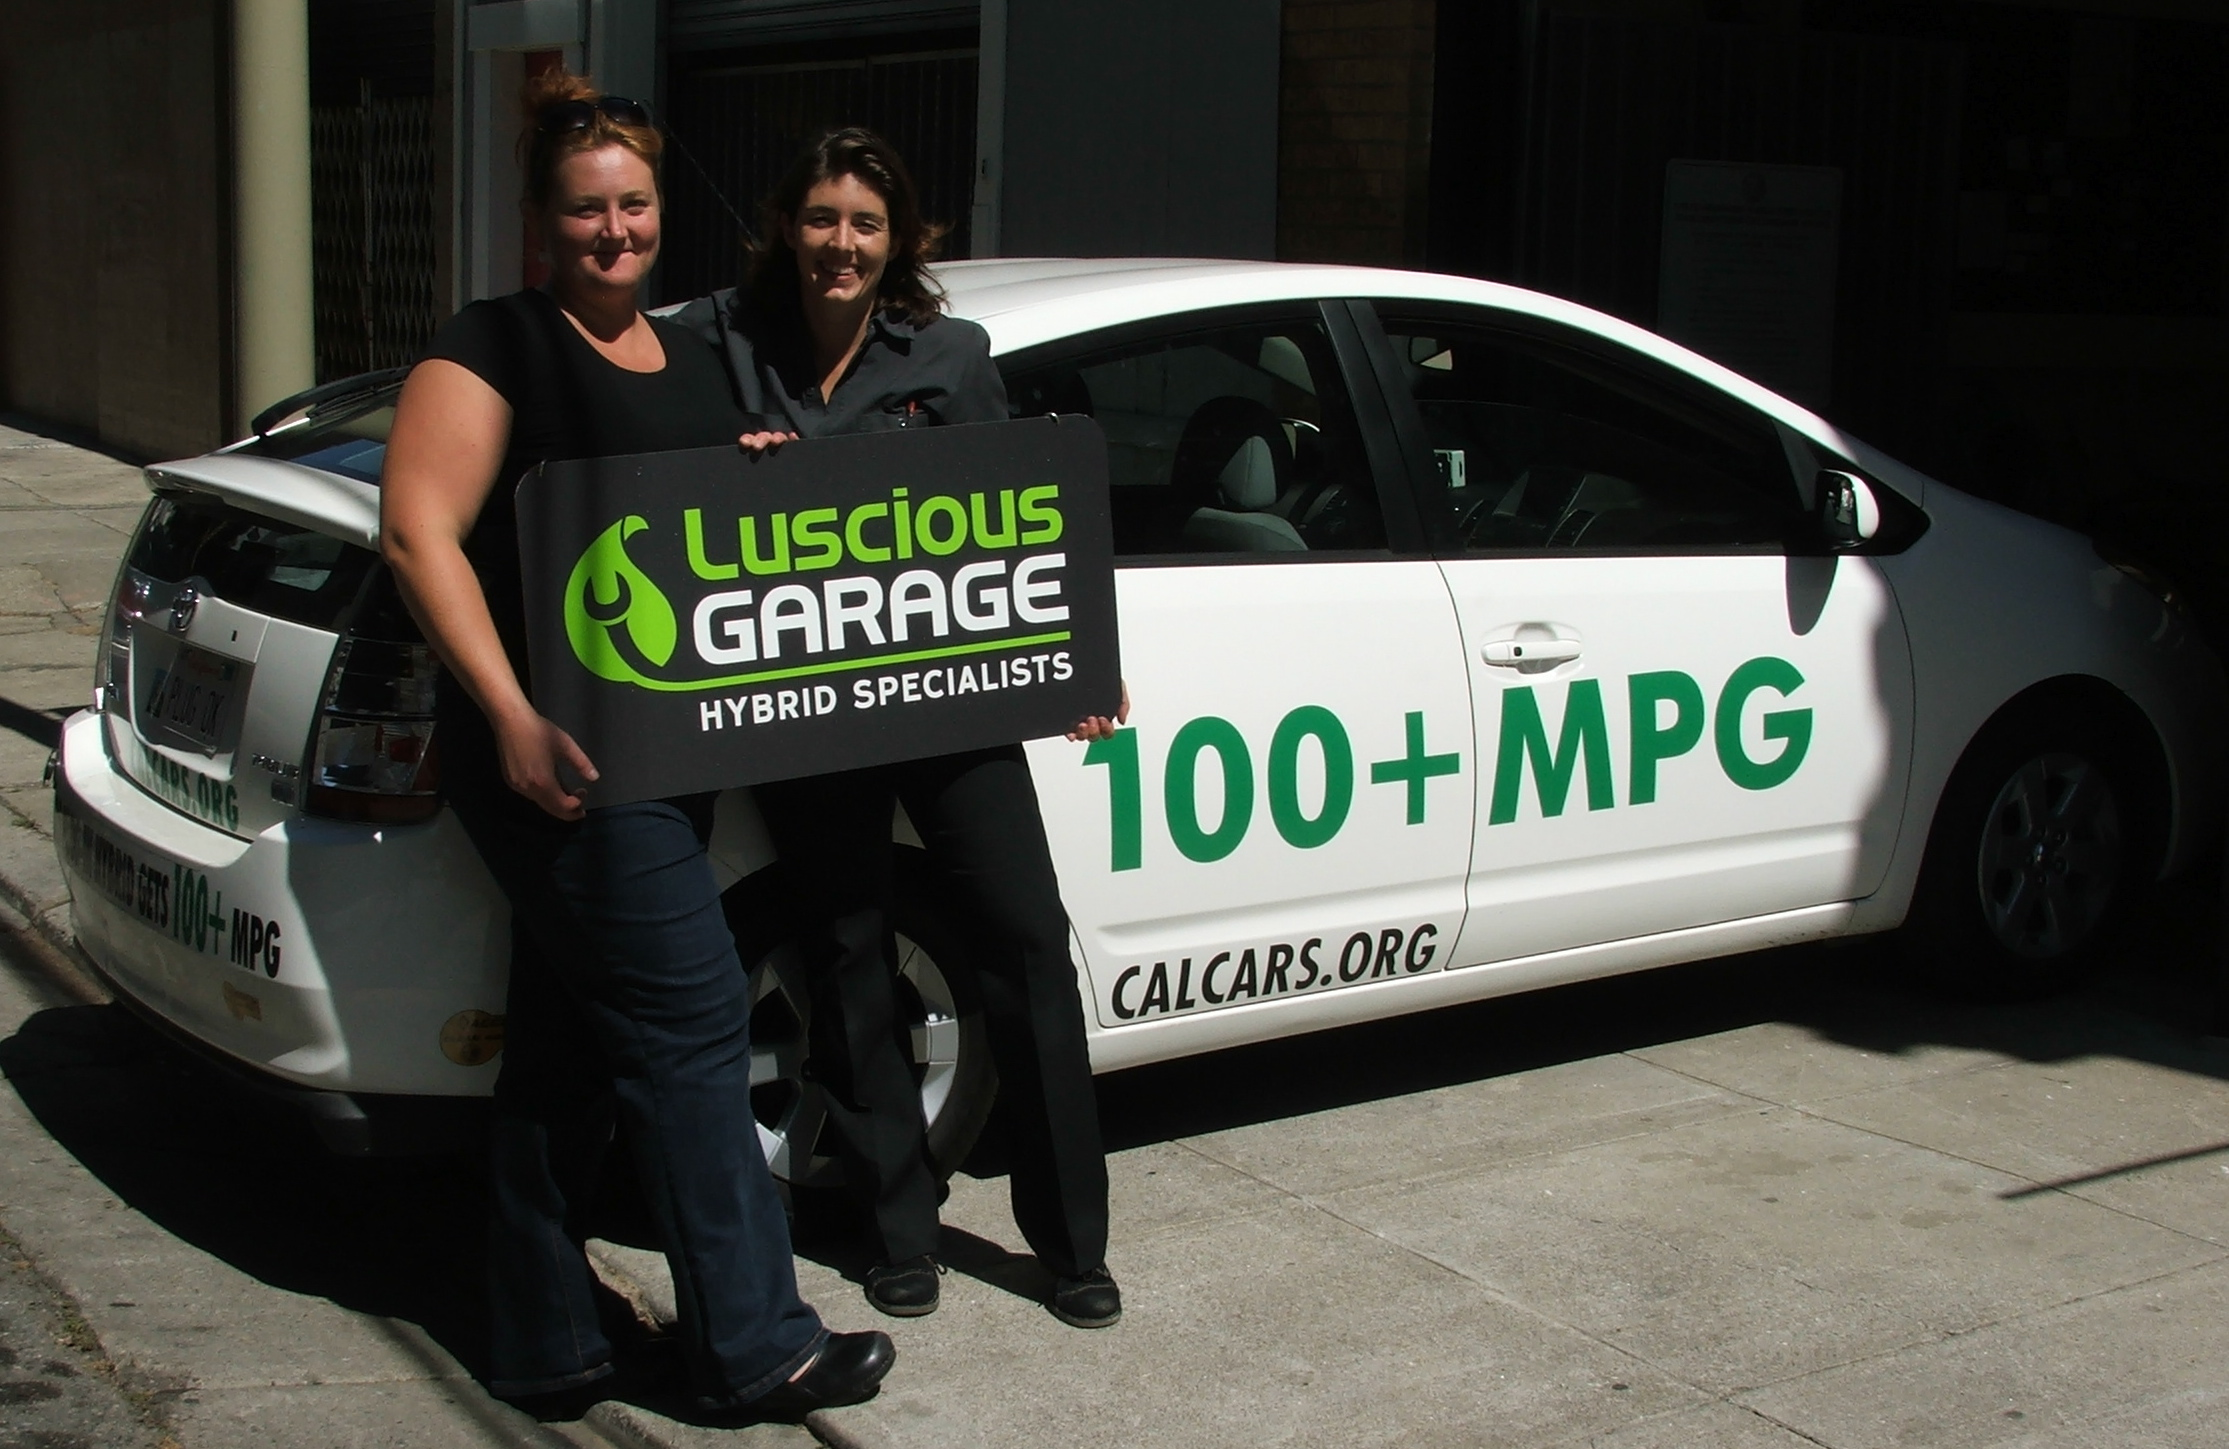 Tami Prochorchik And Carolyn Coquillette Opened Luscious Garage In San Francisco September 2007